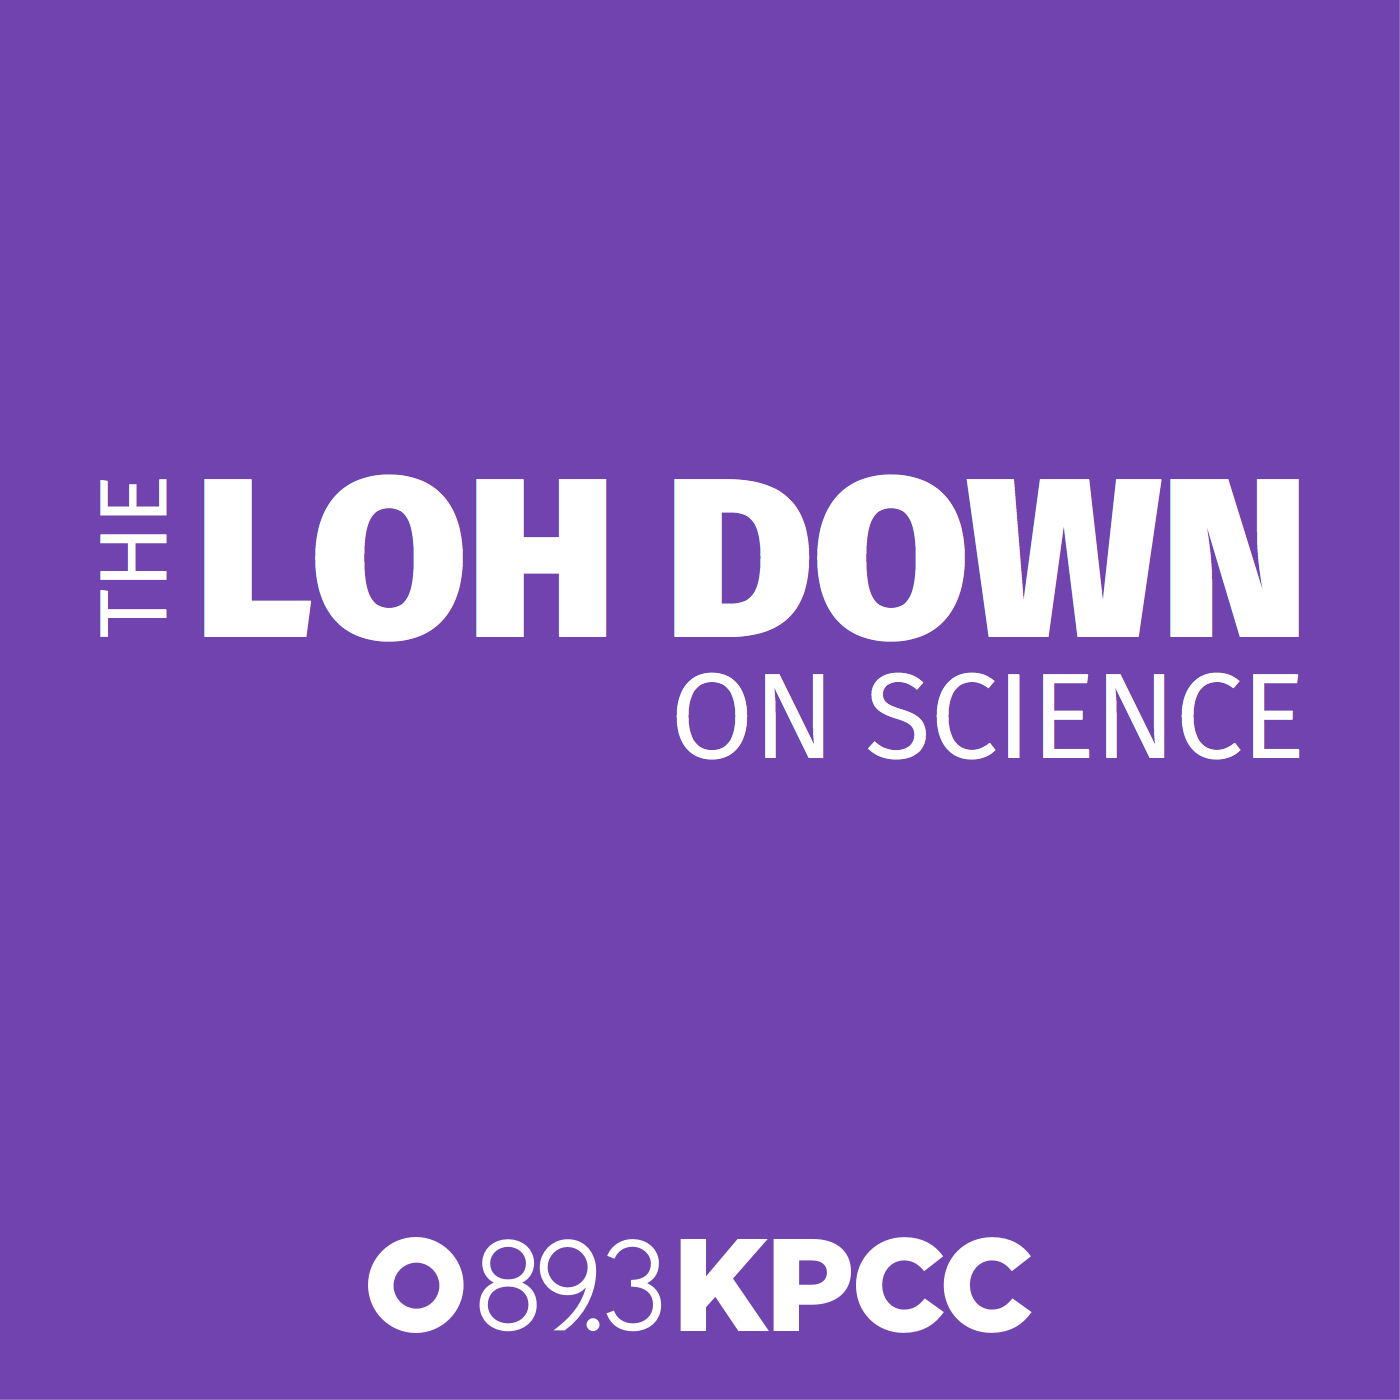 The Loh Down on Science